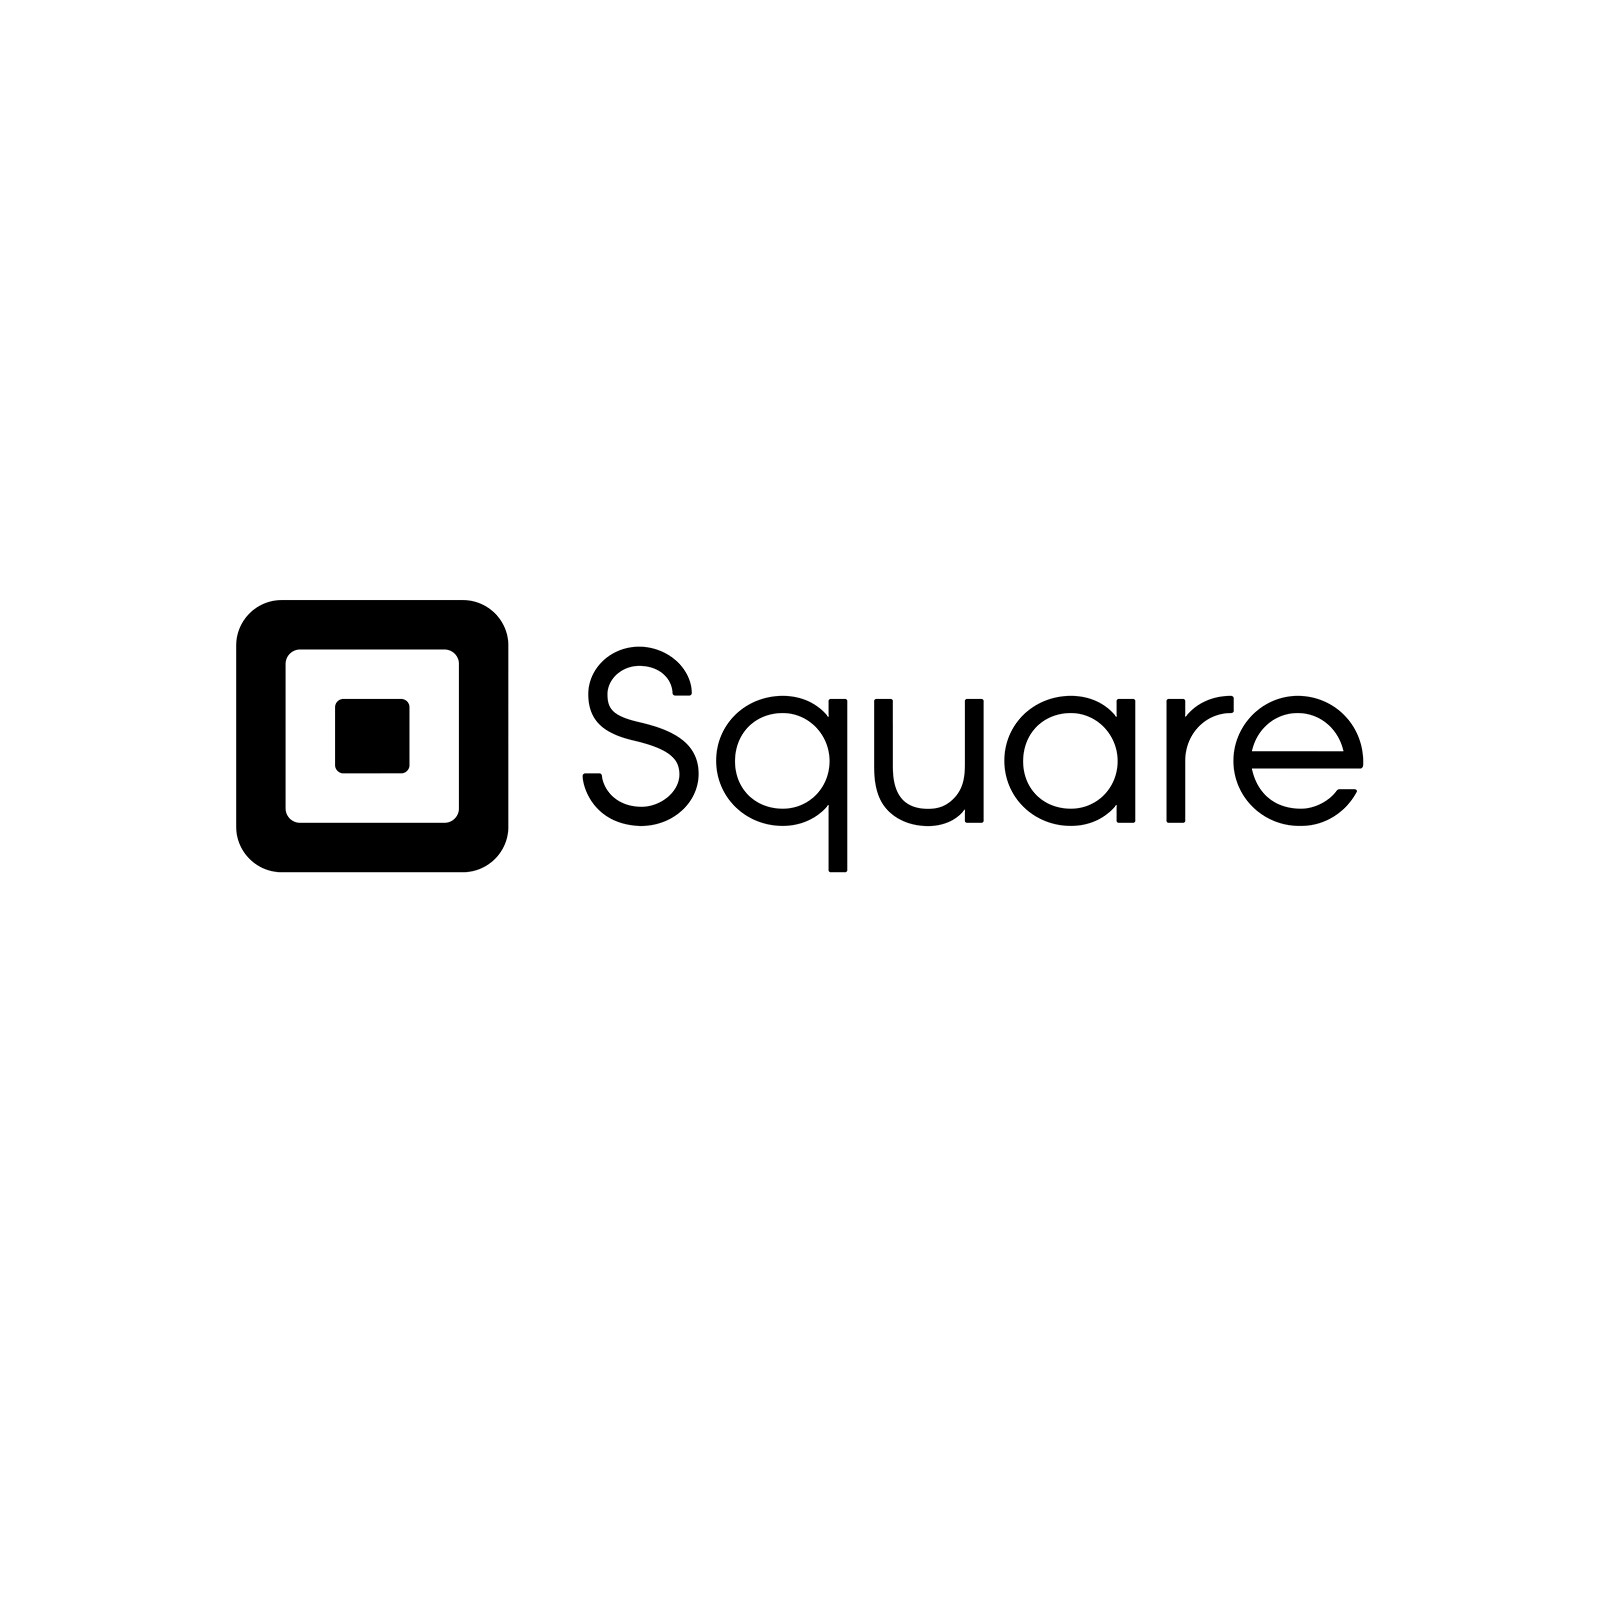 I now have Square